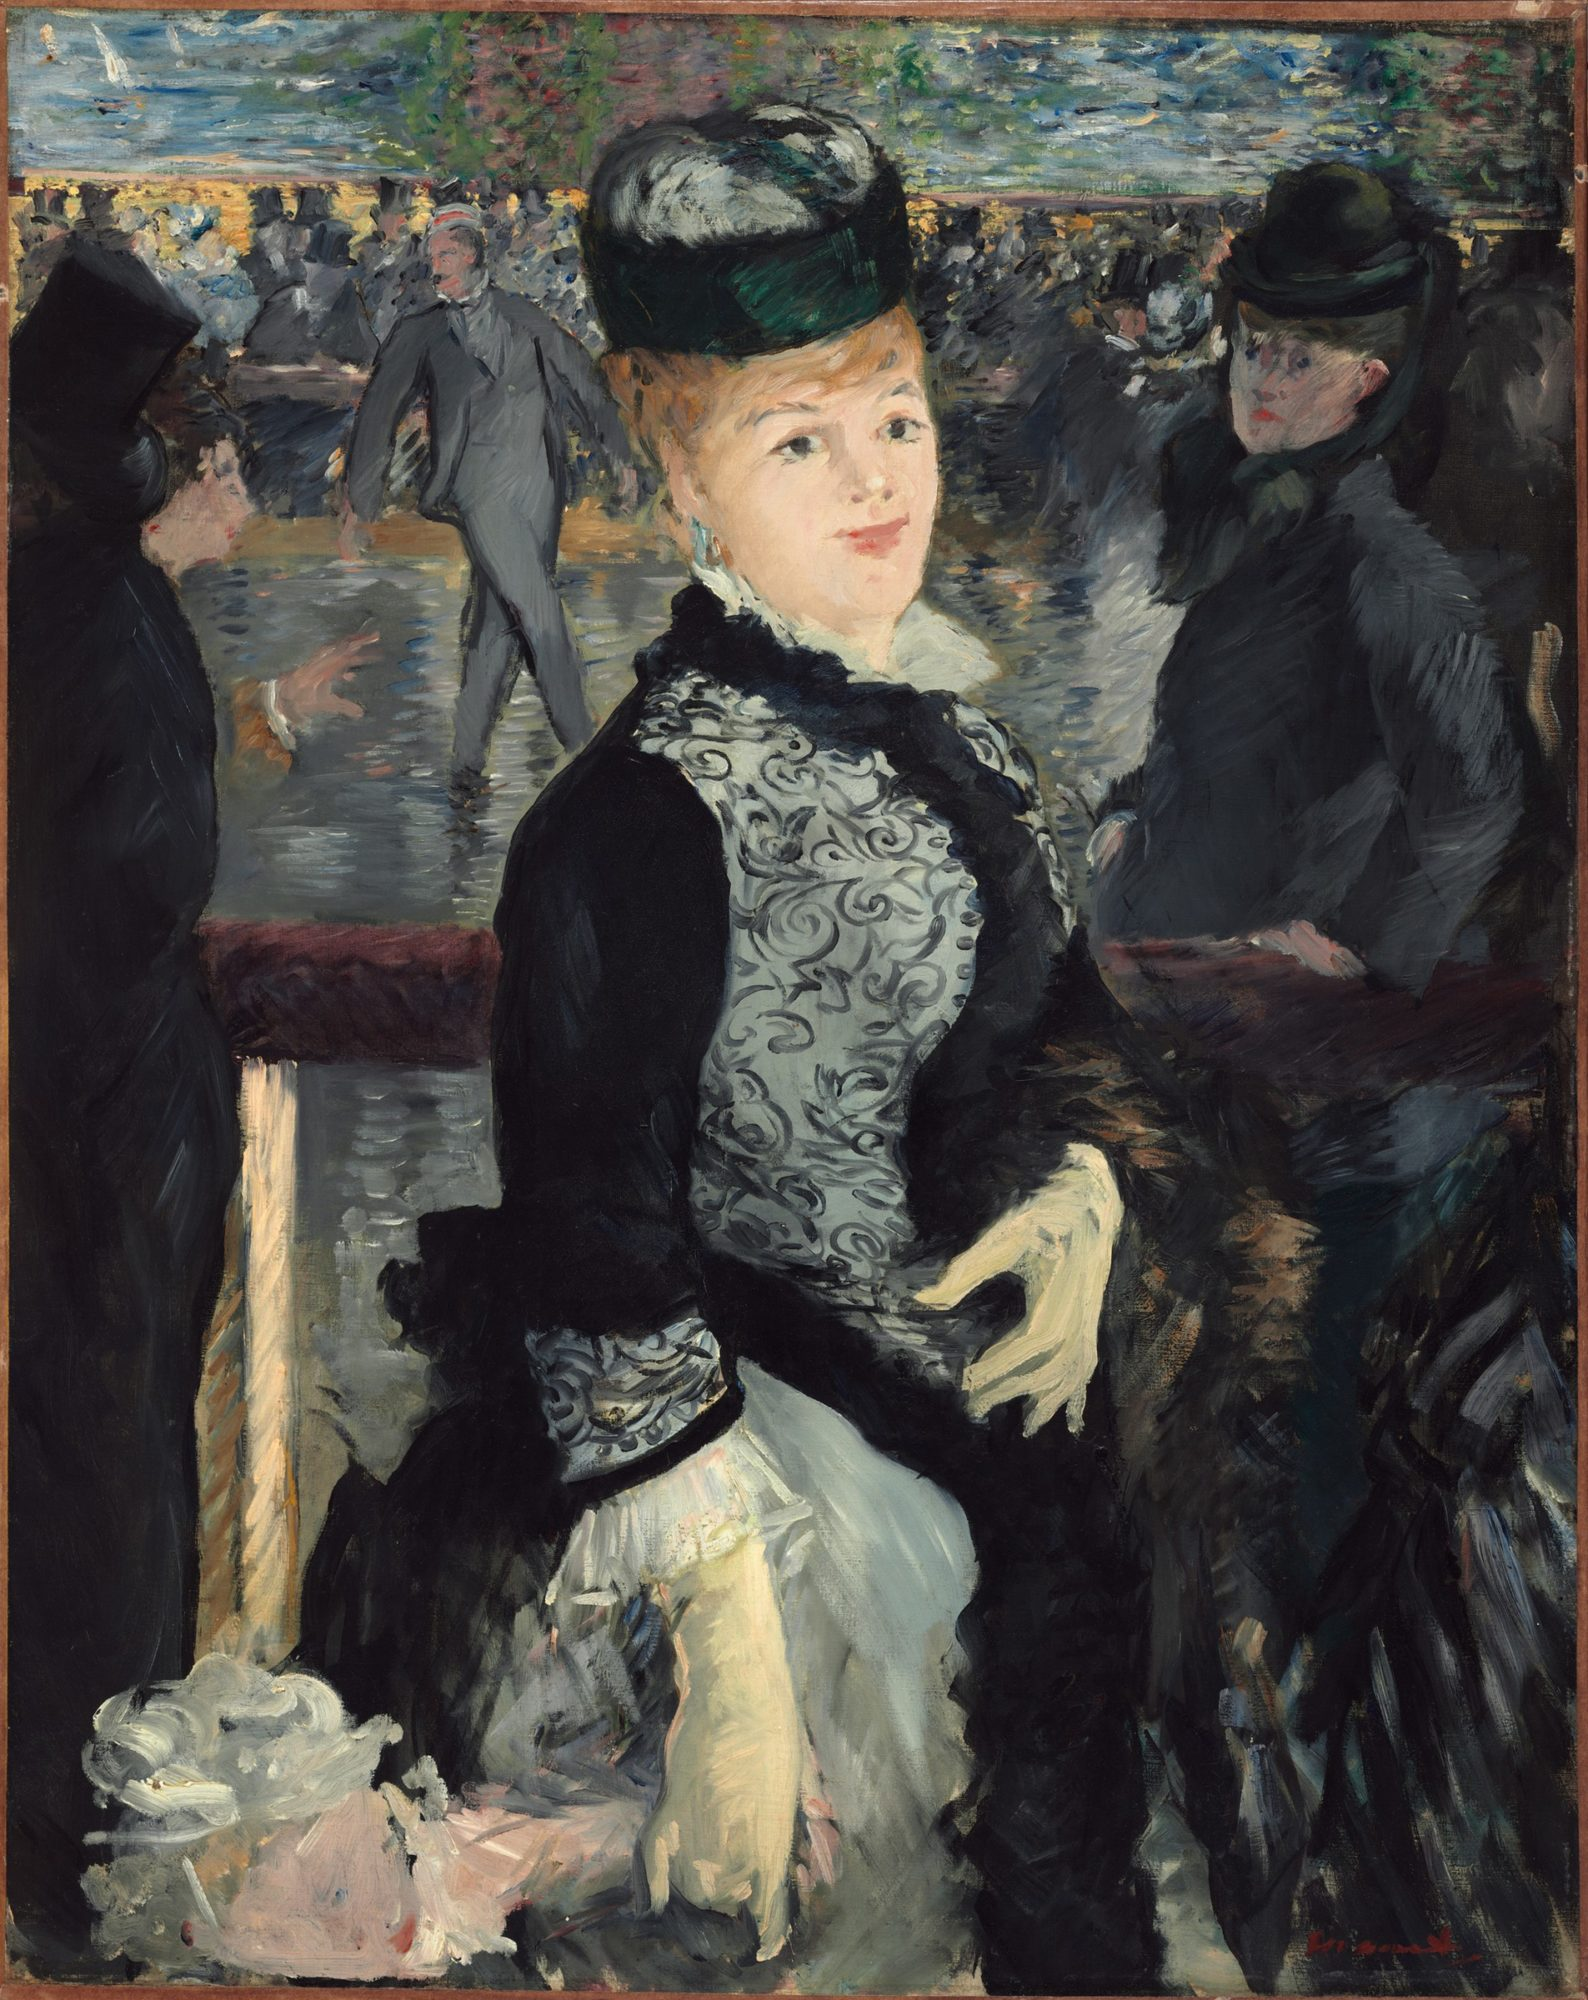 Édouard Manet, Au Skating, 1877. Harvard Art Museums